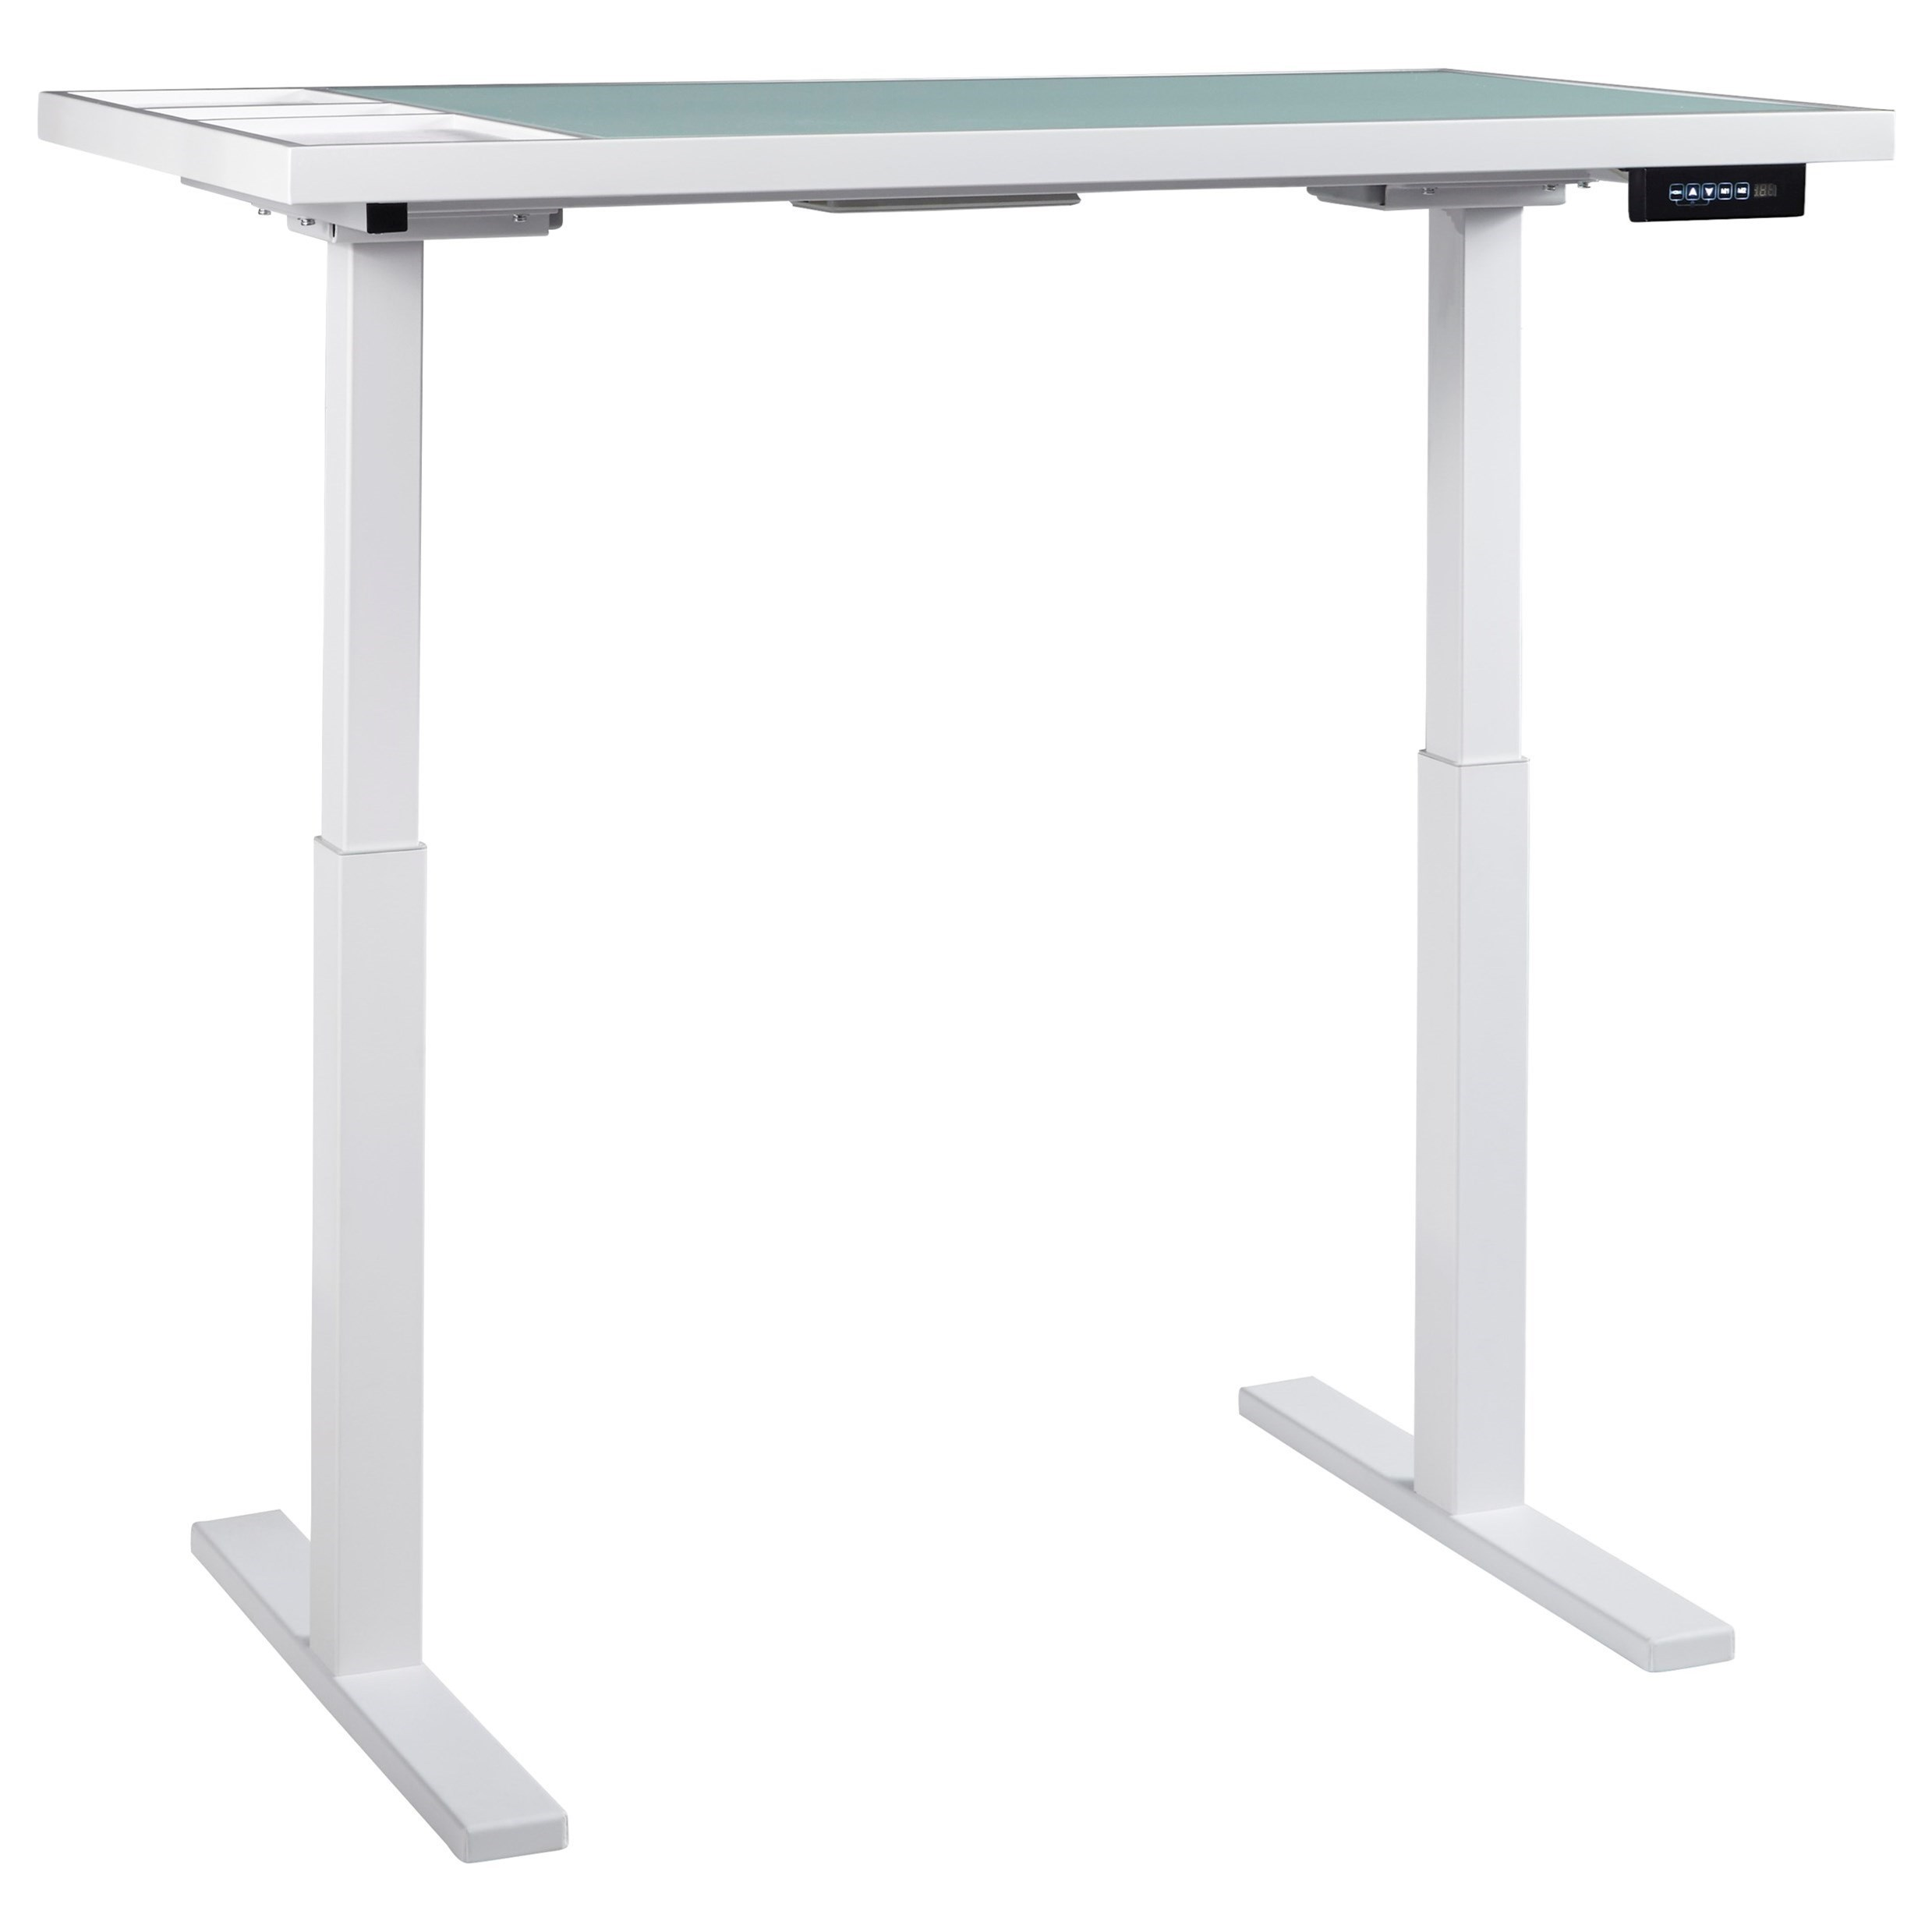 Signature Design By Ashley Baraga White Finish Standing Desk/Adjustable Height  Desk With Electric Powered Lift   Royal Furniture   Table Desks/Writing  Desks